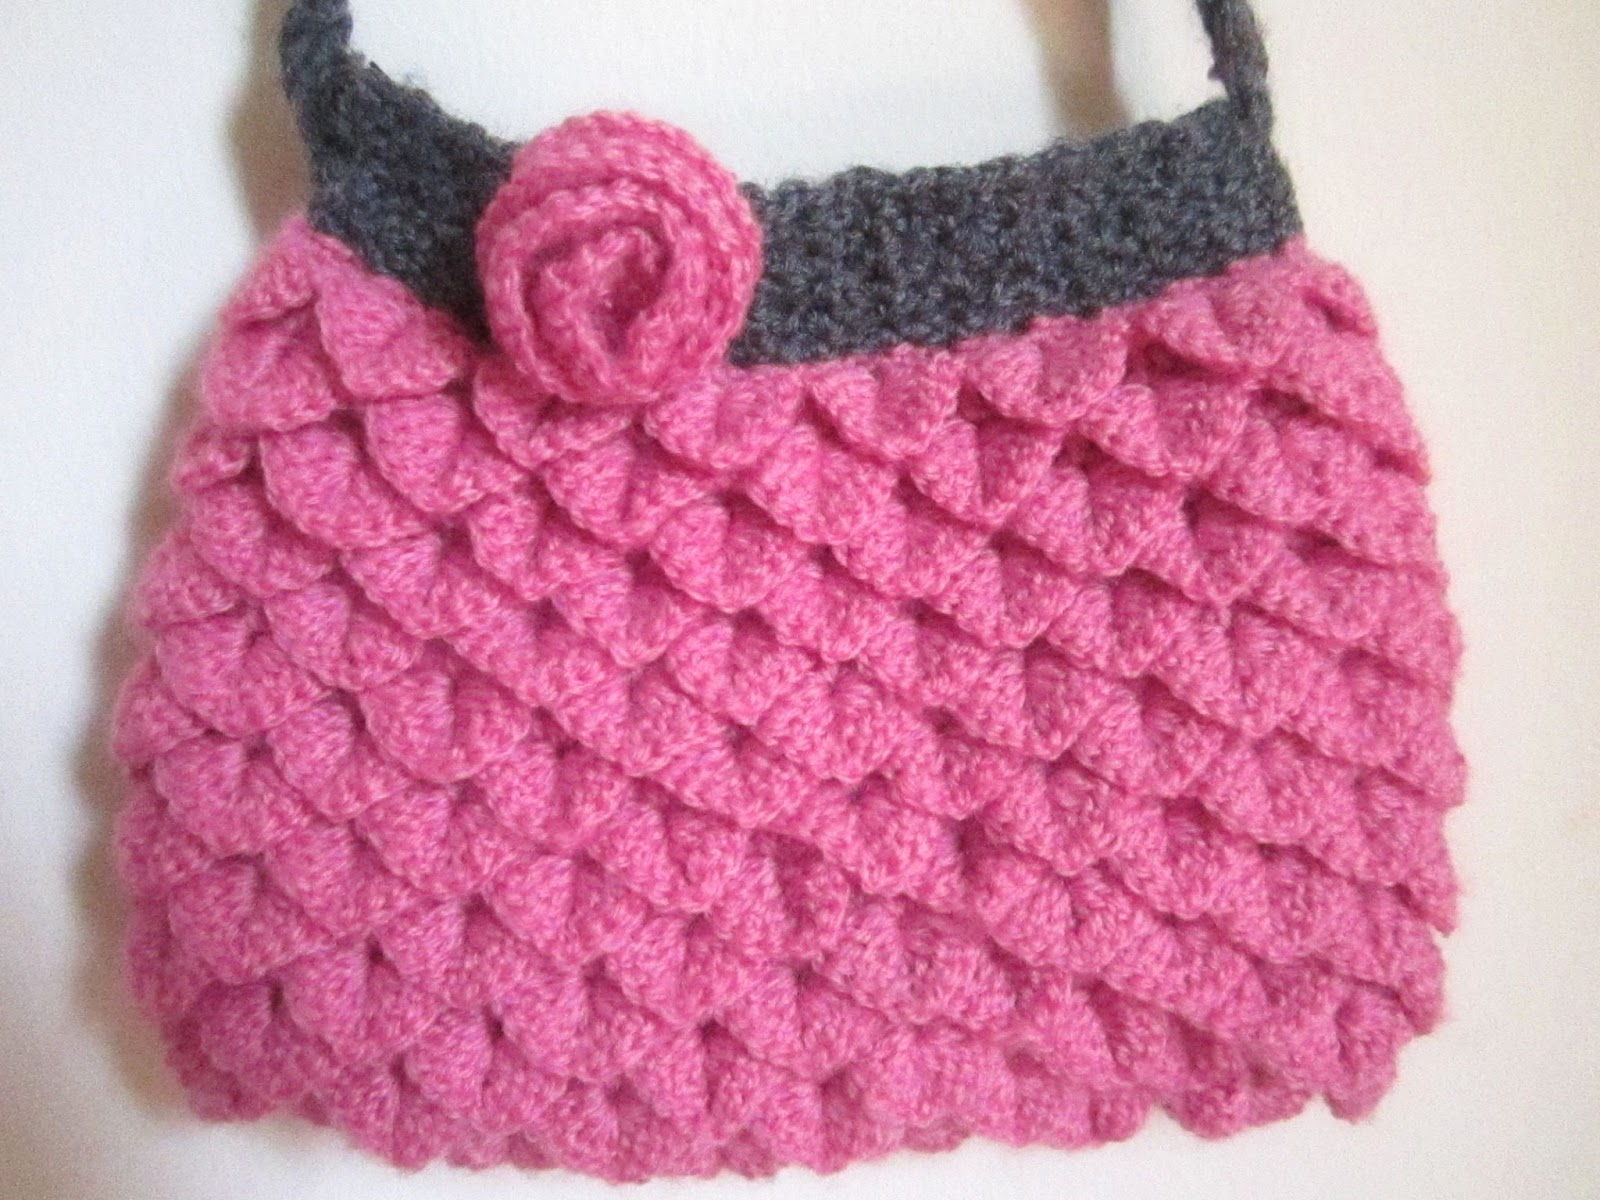 Crochet Easter Bag Pattern : A little love everyday!: My crochet project : Mermaid ...